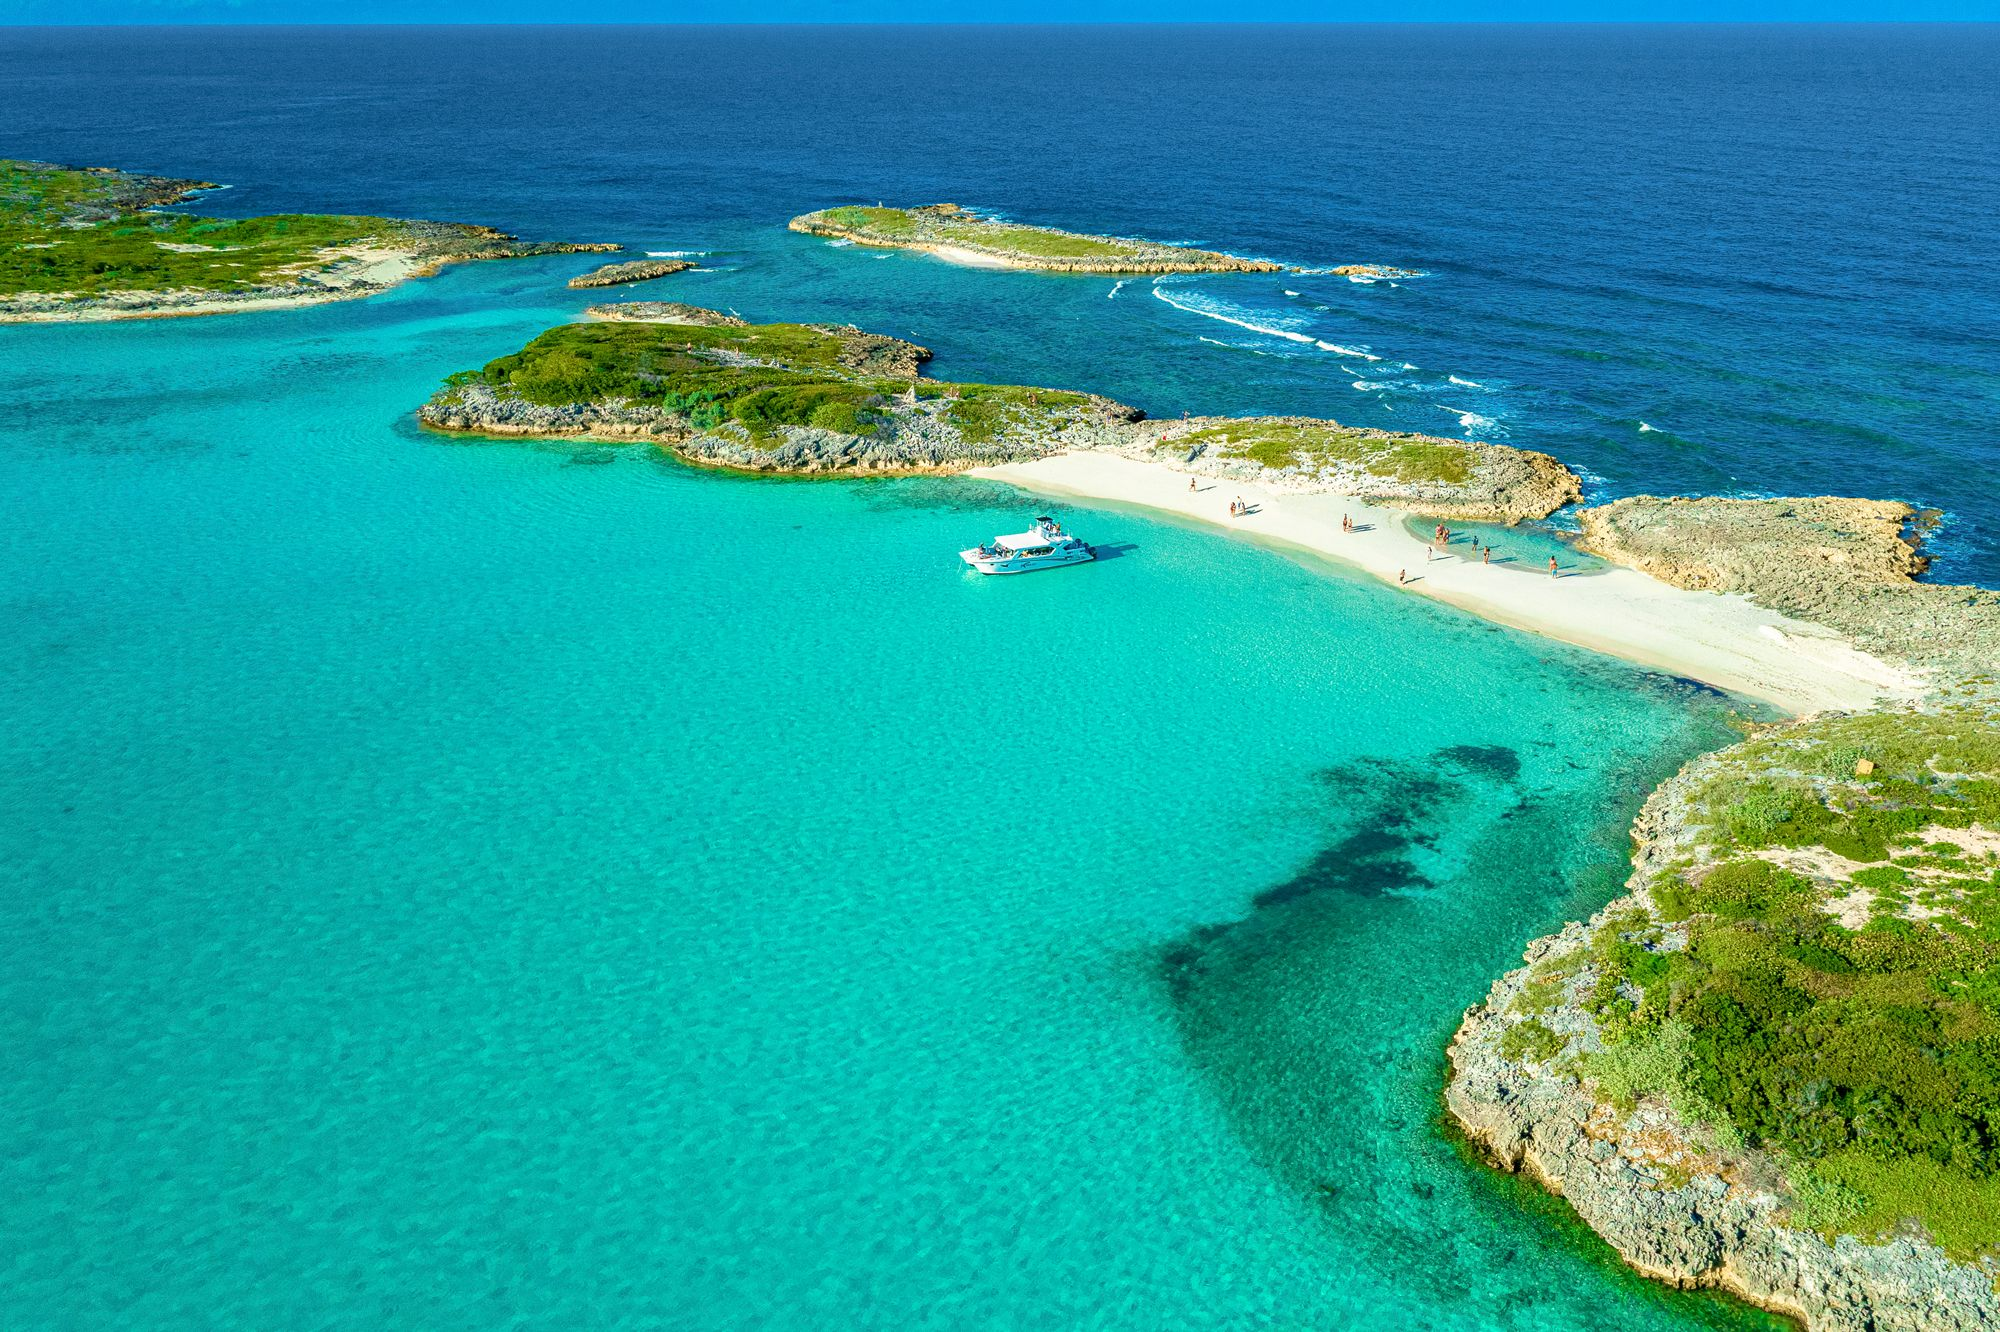 Sandals Emerald Bay Bahamas Island Tour